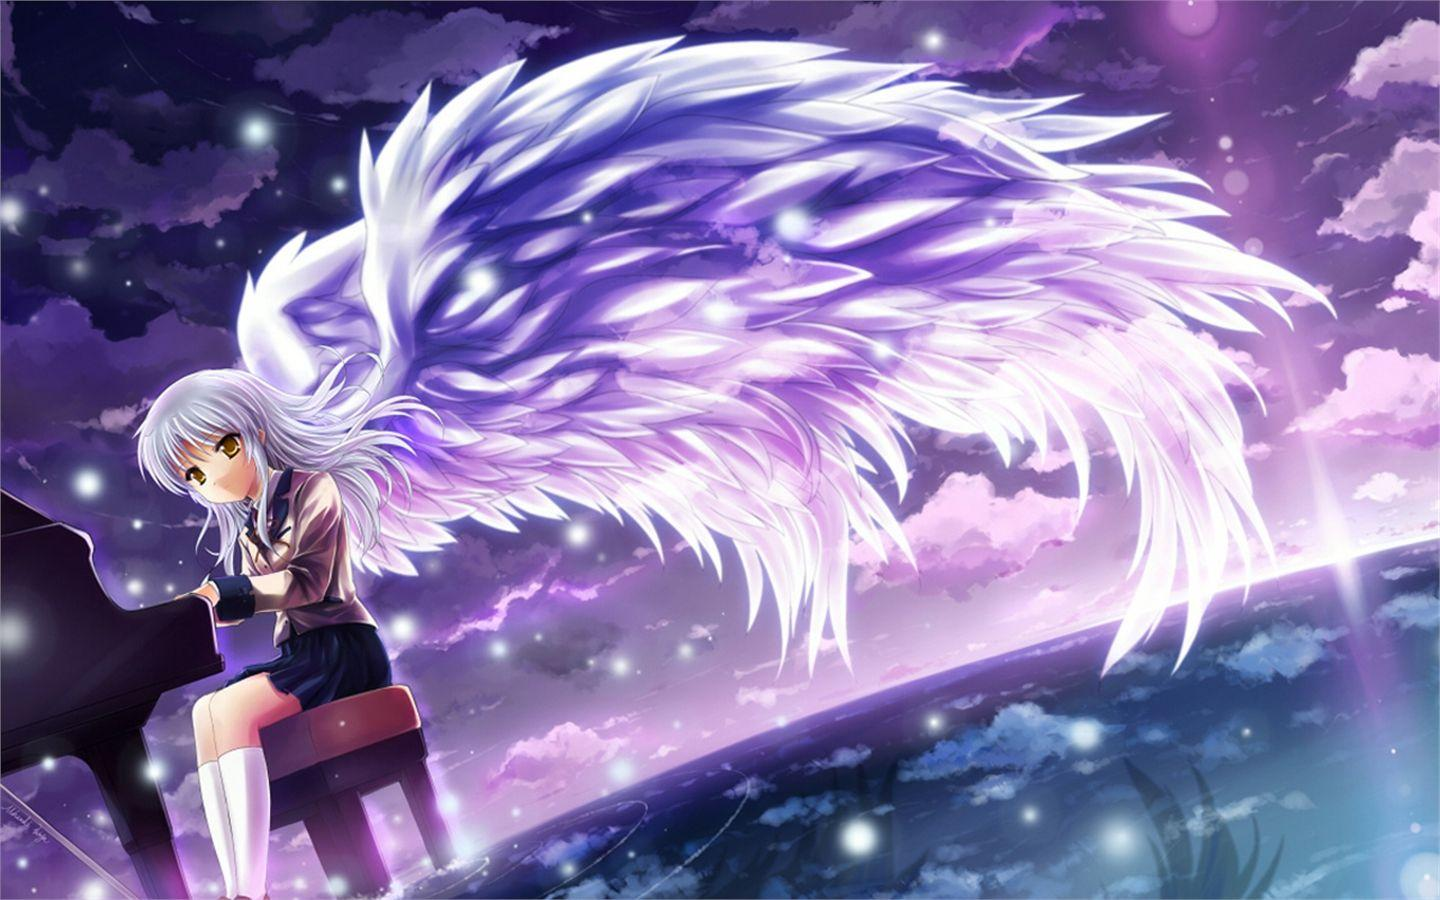 Anime Angel Beats! wallpapers (Desktop, Phone, Tablet) - Awesome ...